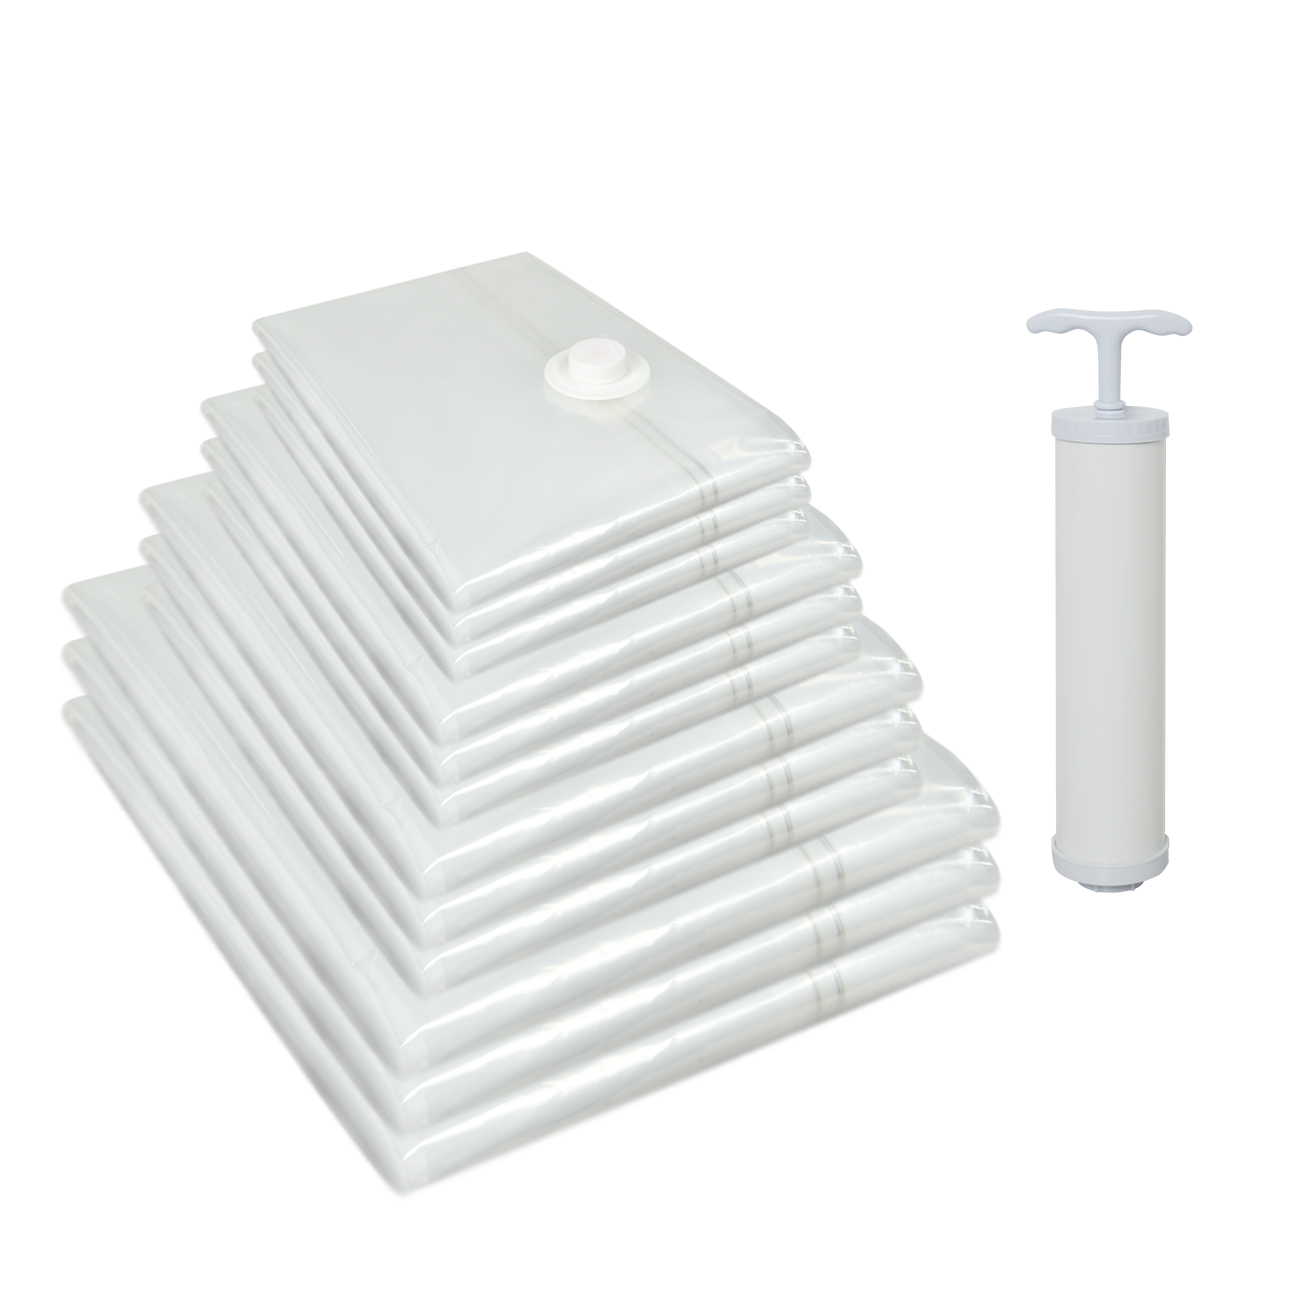 Vacuum storage bags travel vacuum sealer bags <strong>110</strong> micron 8 wire